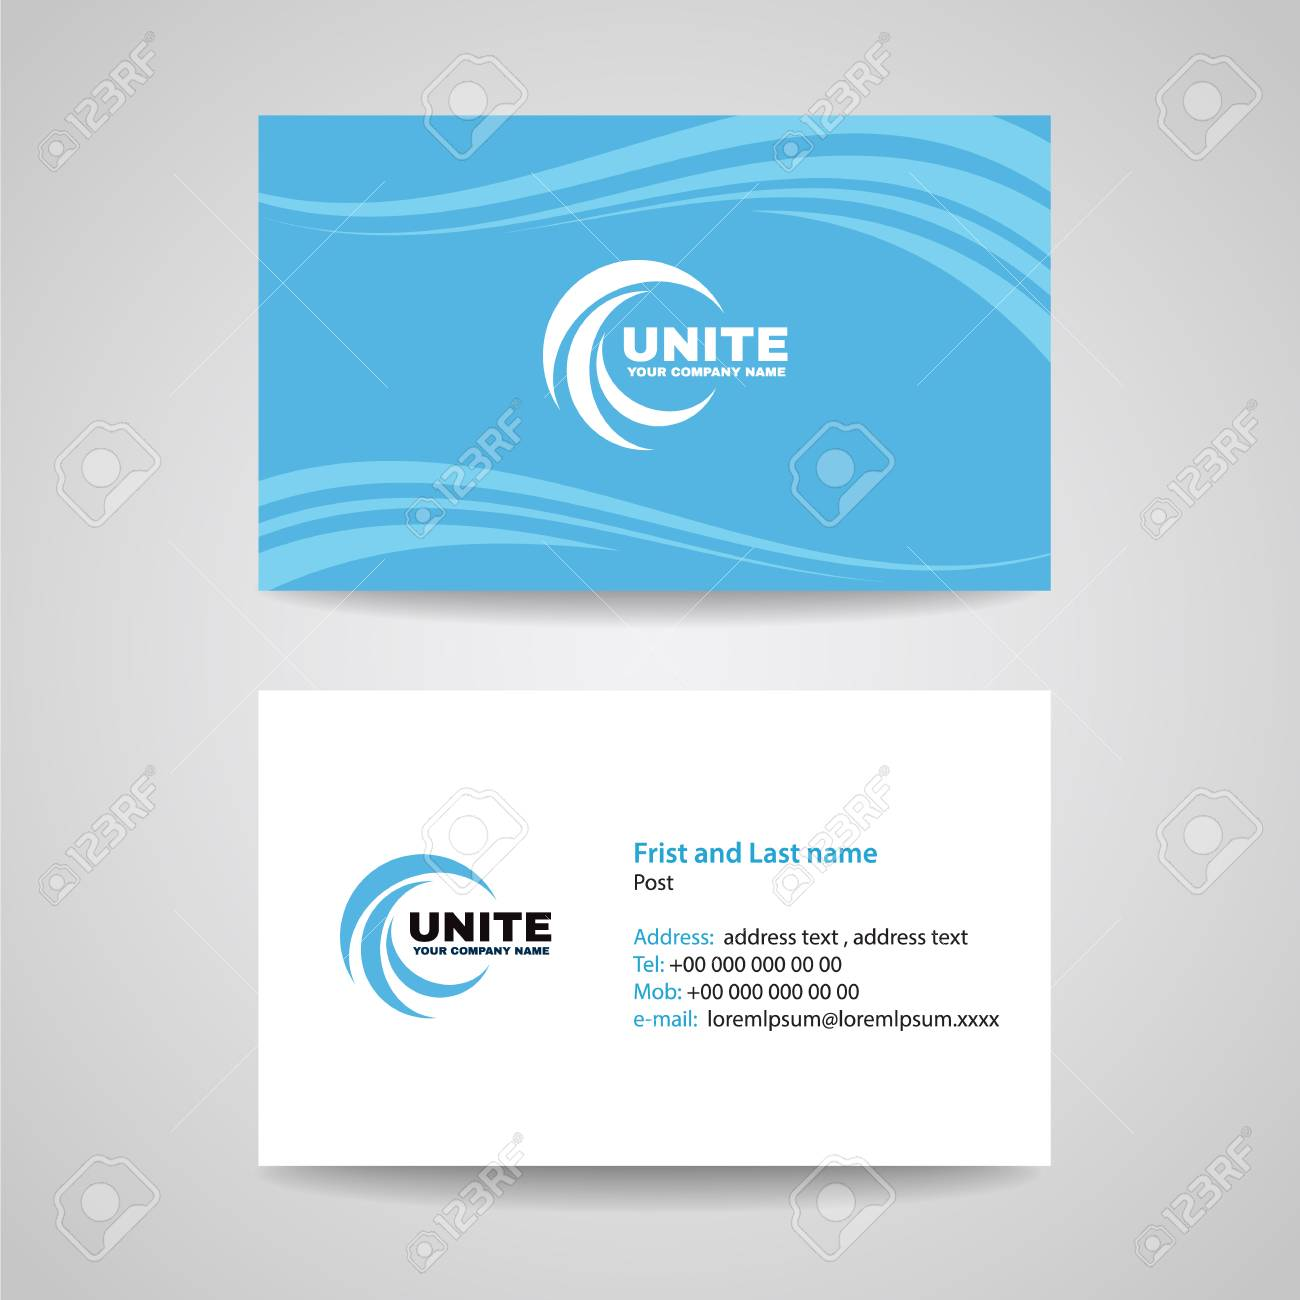 Business Card Background Template - Blue Sky Wave Style Vector ...